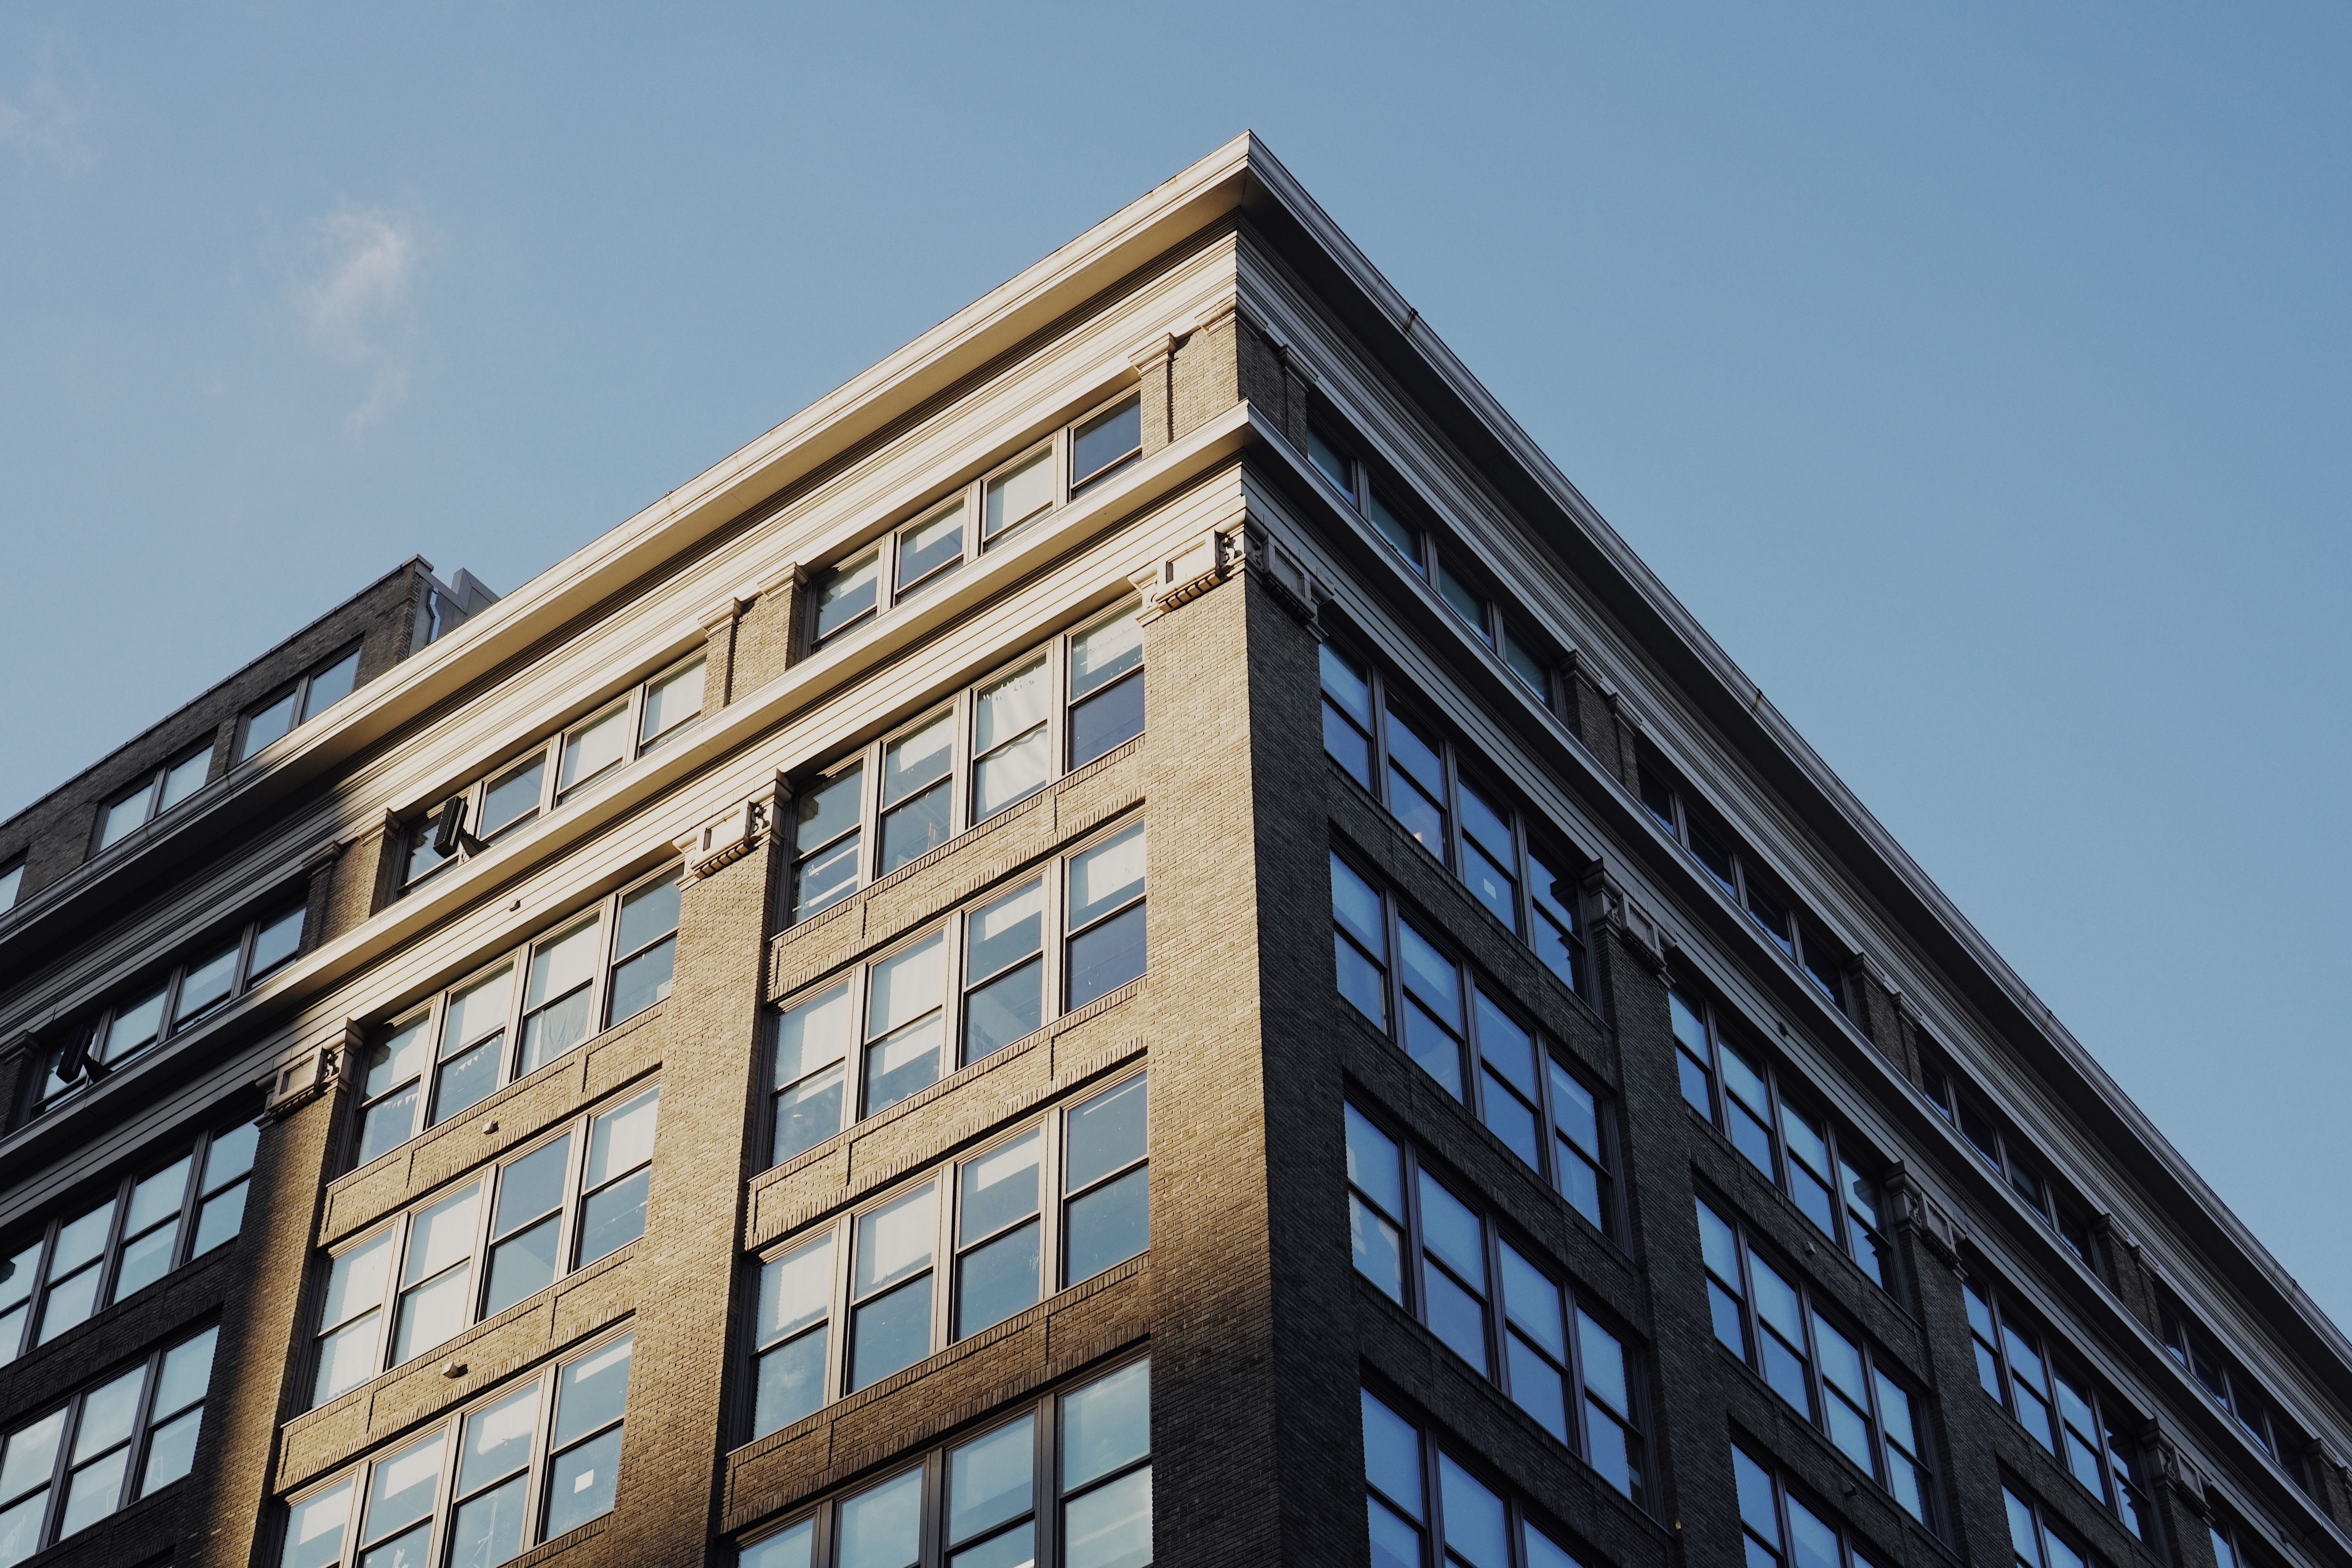 low angle photo of gray concrete building